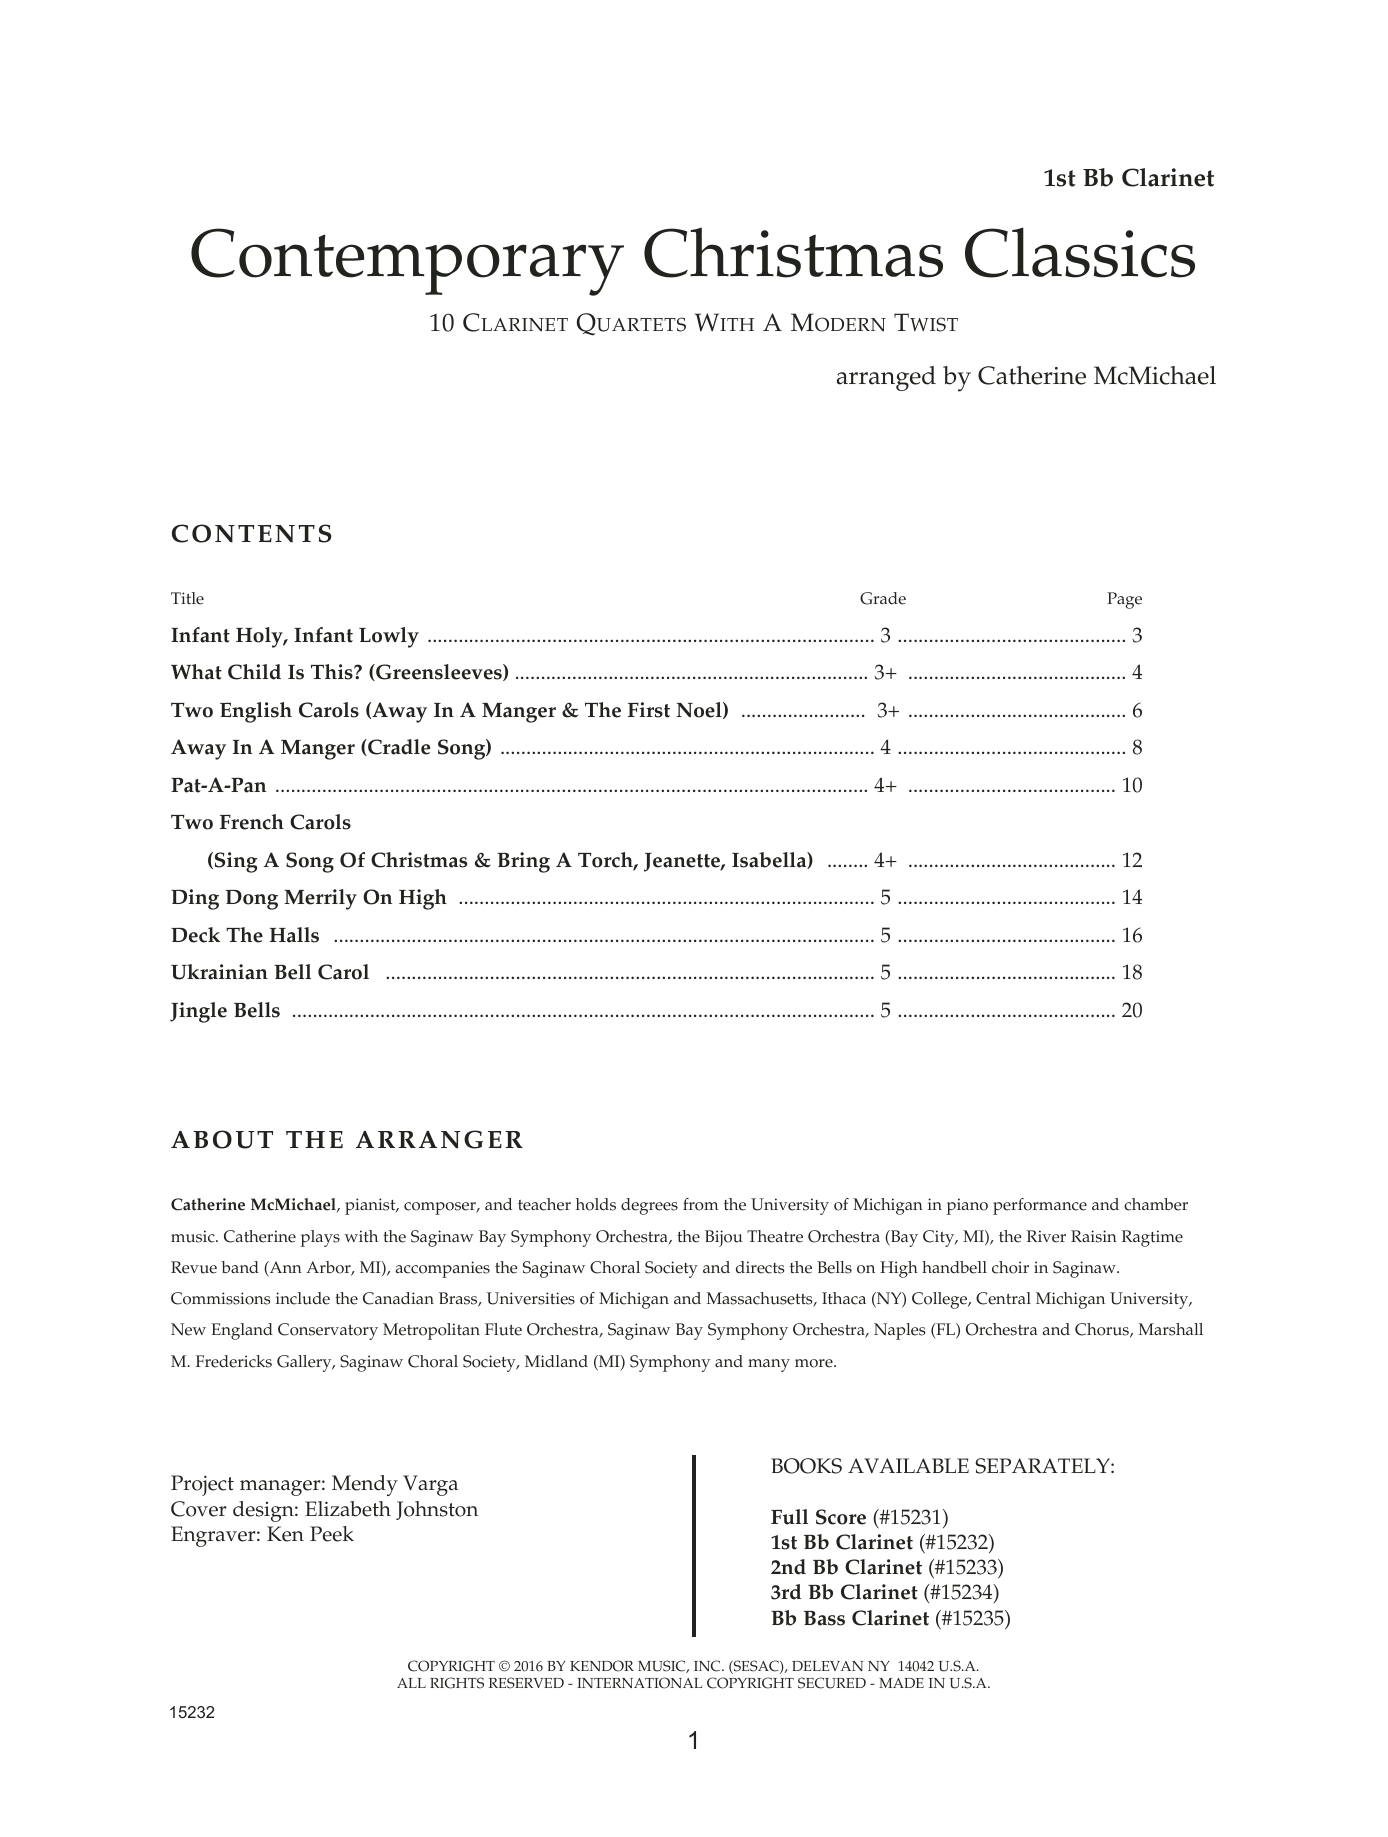 Clarinet Sheet Music Christmas.Catherine Mcmichael Contemporary Christmas Classics 1st Bb Clarinet Sheet Music Notes Chords Download Printable Woodwind Ensemble Sku 125068